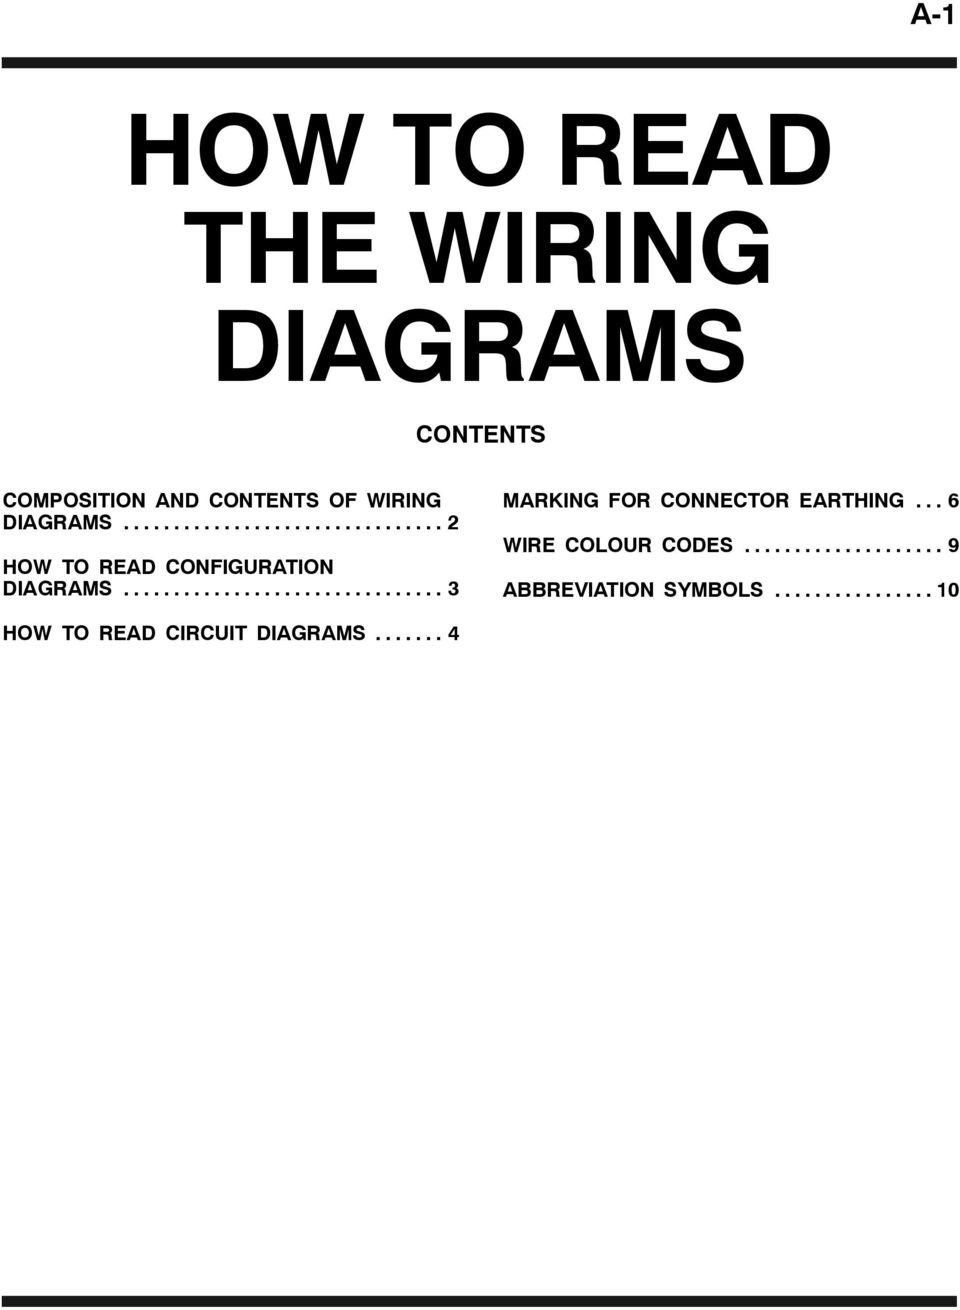 How To Read The Wiring Diagrams Pdf 2009 Subaru Legacy Engine Compartment Diagram 2 Configuration